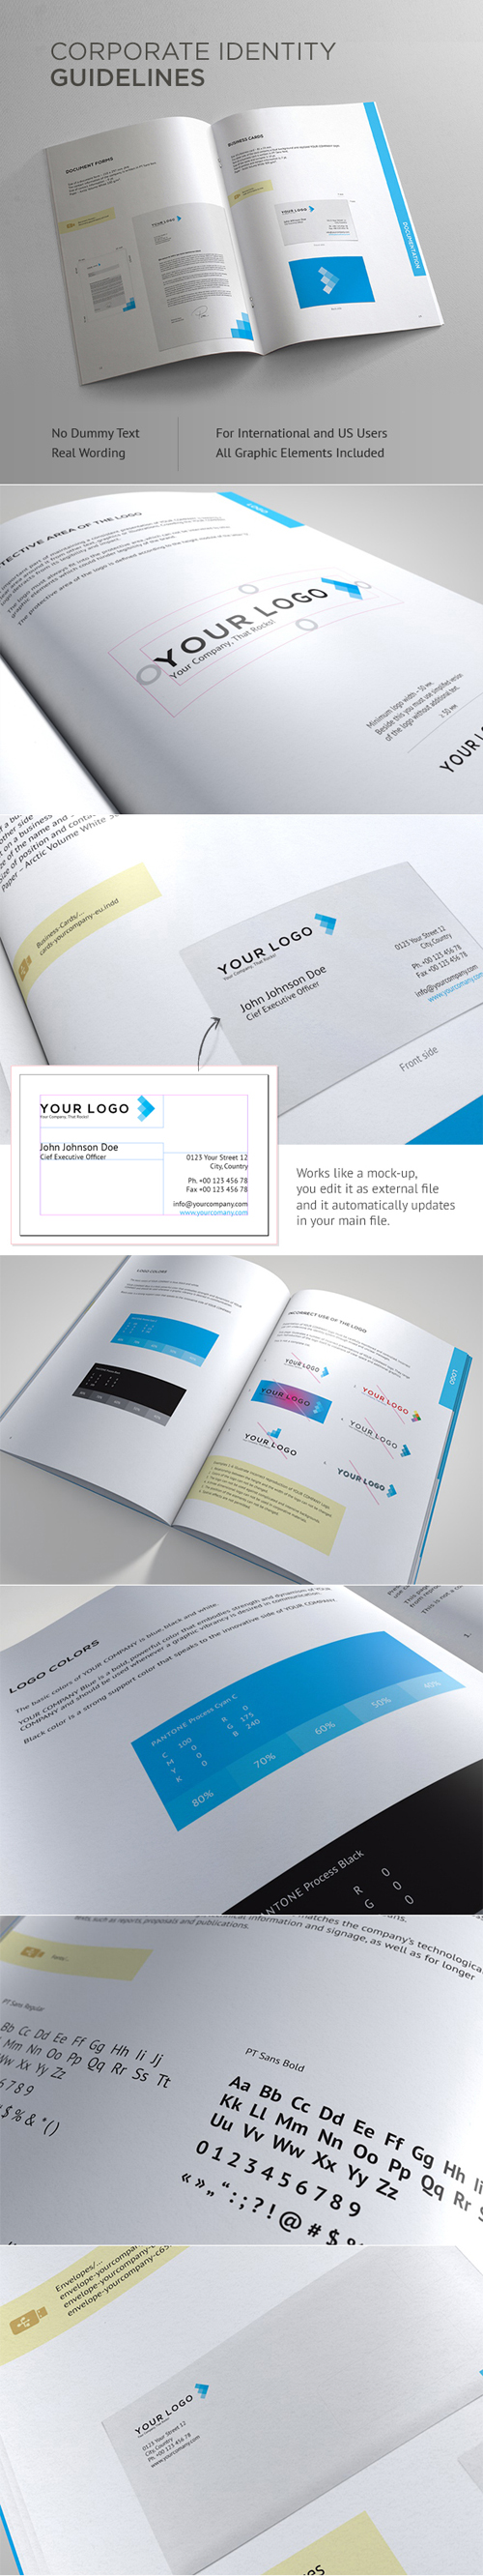 Corporate Identity Guidelines Brochure